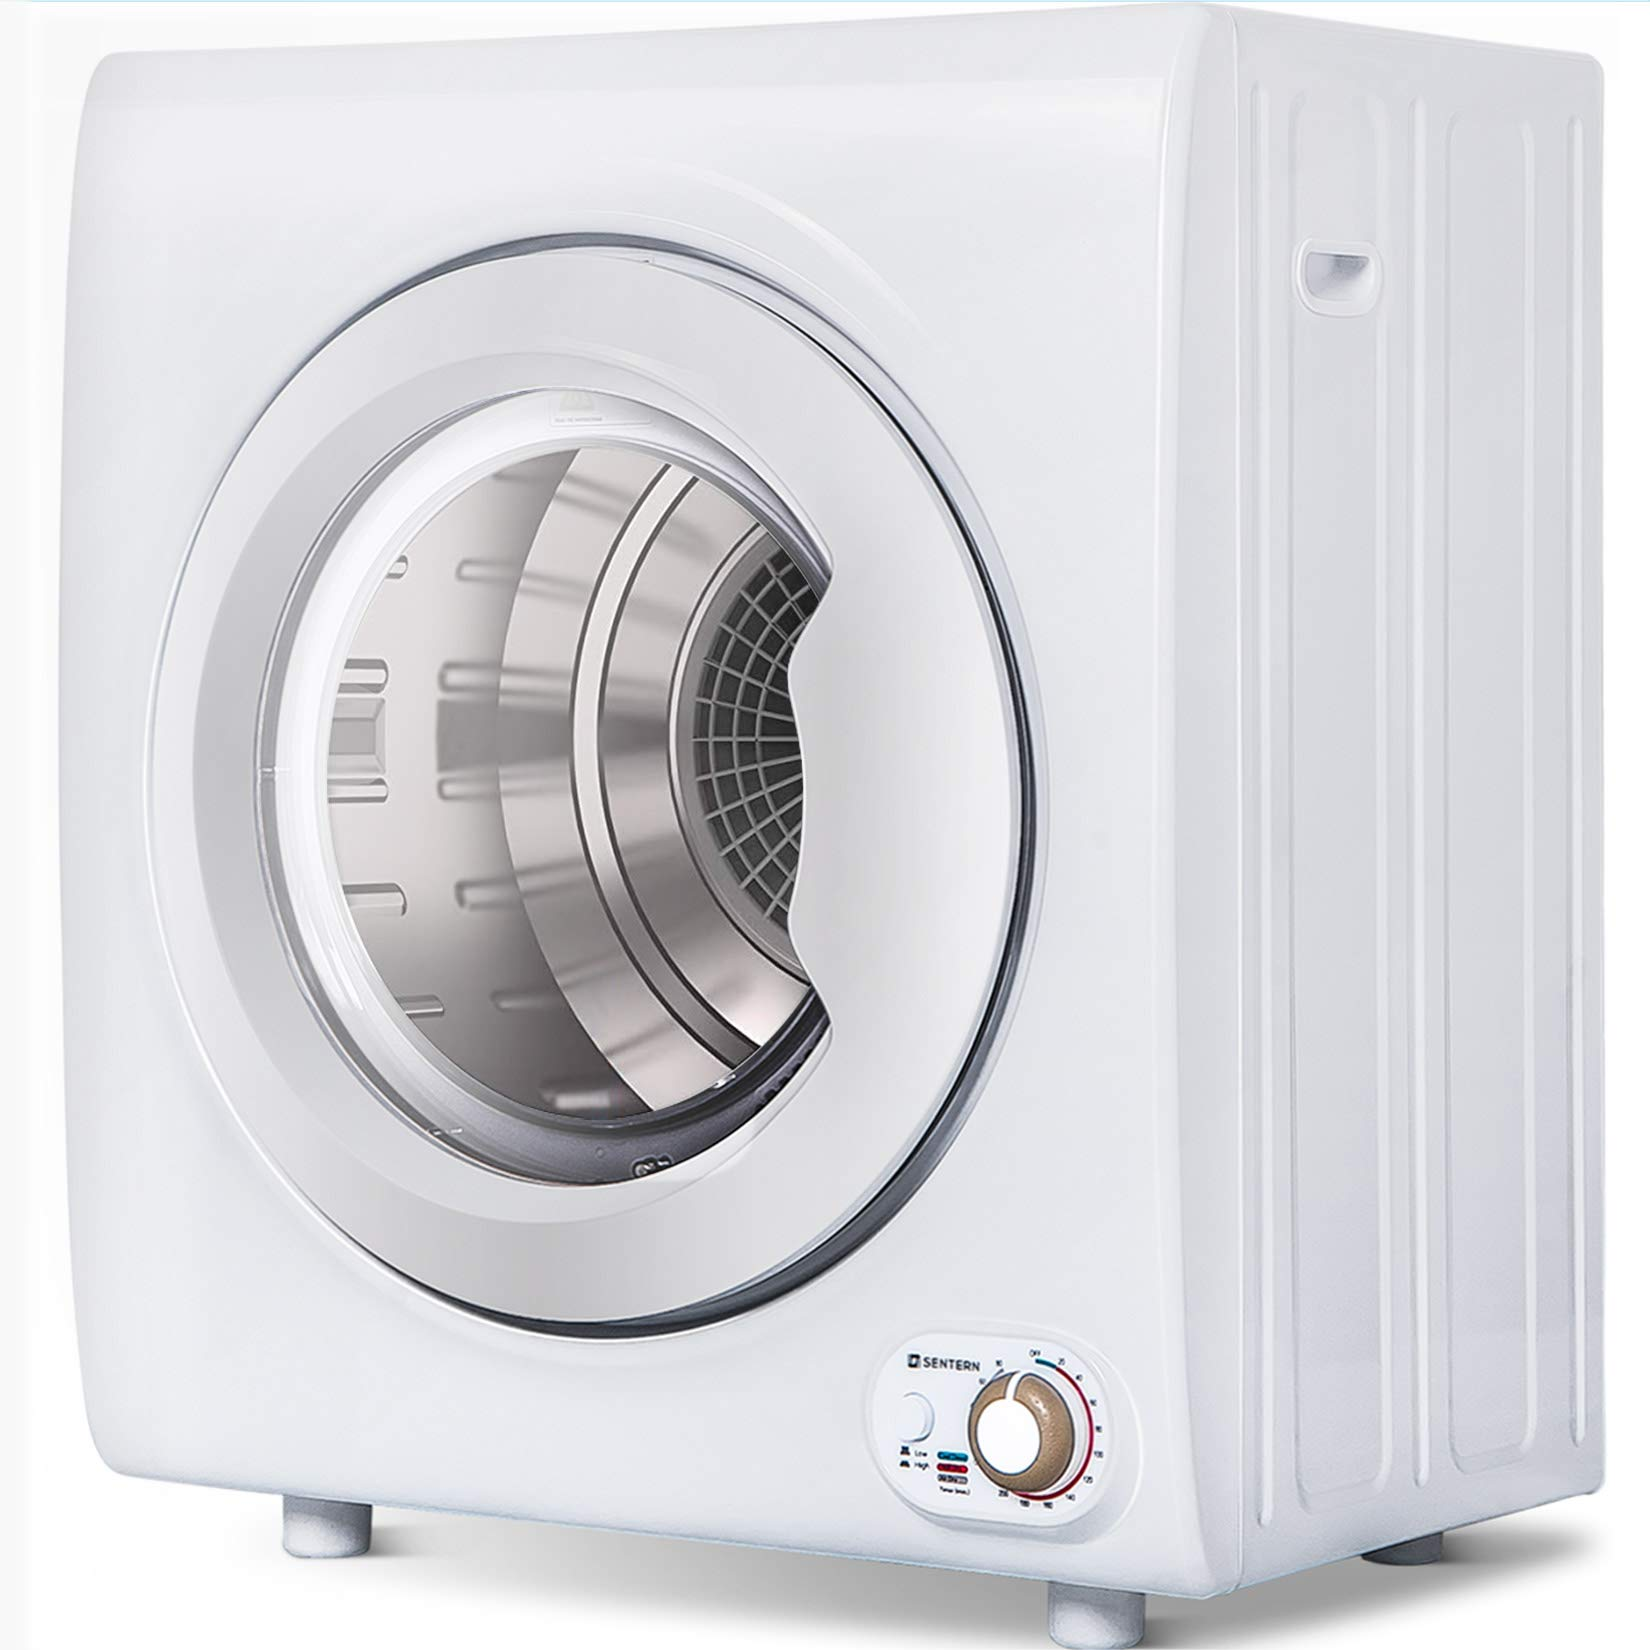 Sentern Compact Laundry Dryer, Electric Portable Clothes Dryer with Stainless Steel Tub, Control Panel Downside Easy Control with 4 Automatic Drying Mode, White